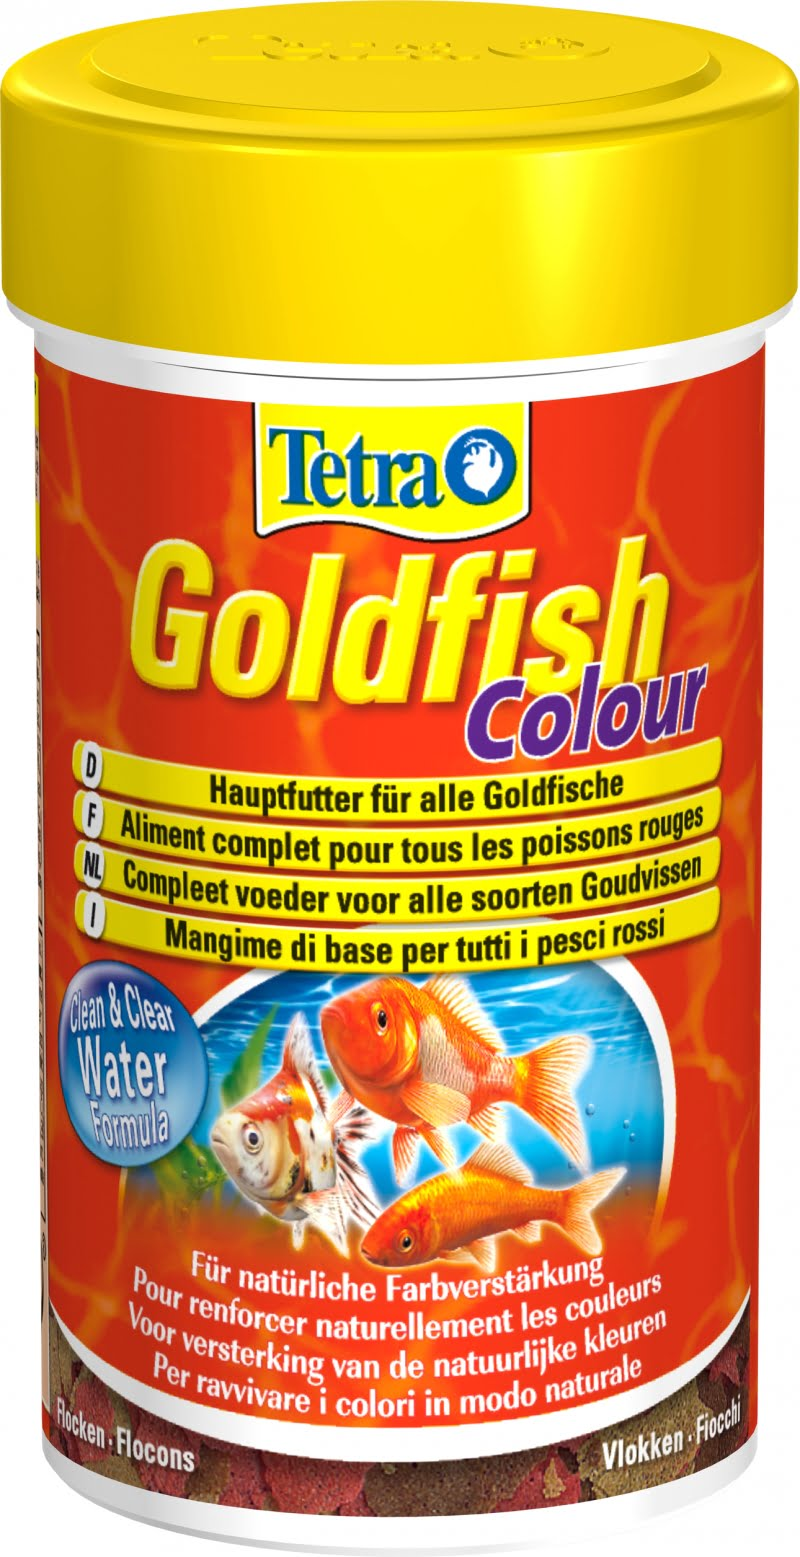 Tetra Goldfish Colour Vlokken 100ml